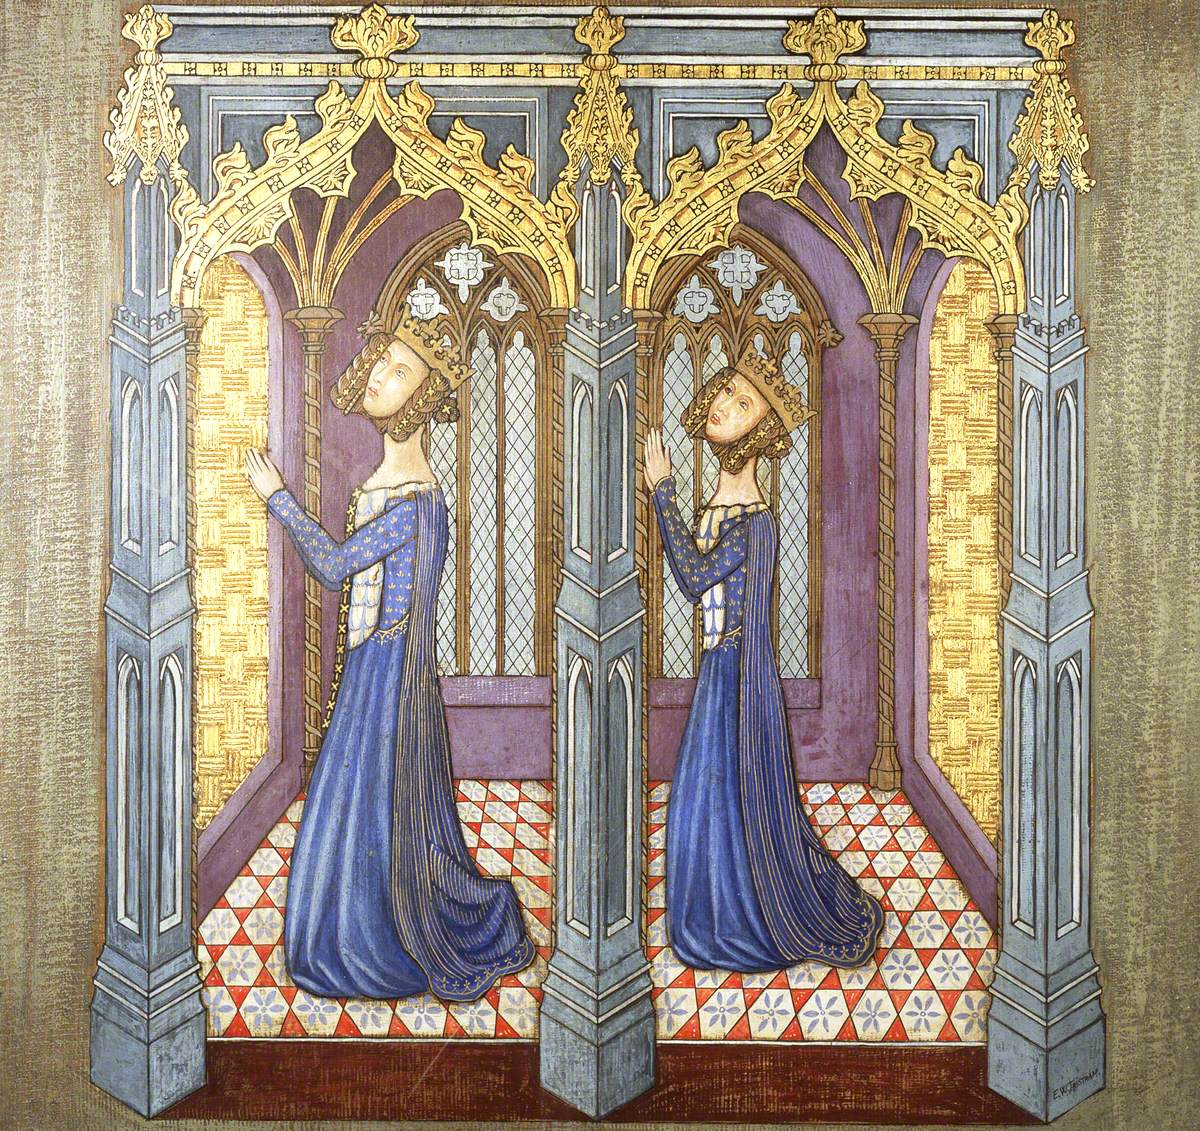 Reconstruction of Medieval Mural Painting, Queen Philippa's Daughters Kneeling in Prayer